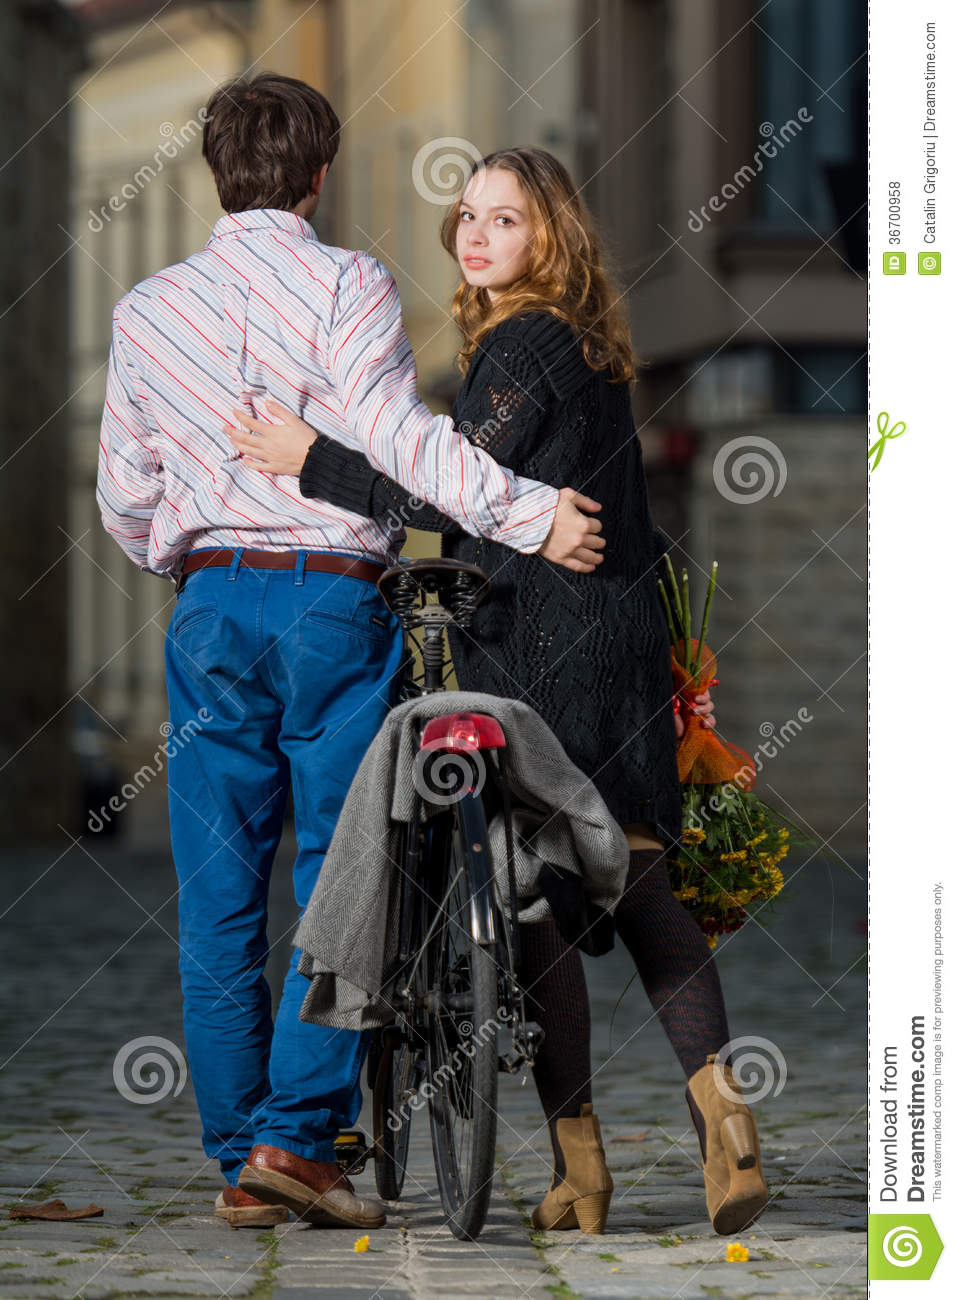 man walking away from a woman young man and woman walking away together royalty free 2942